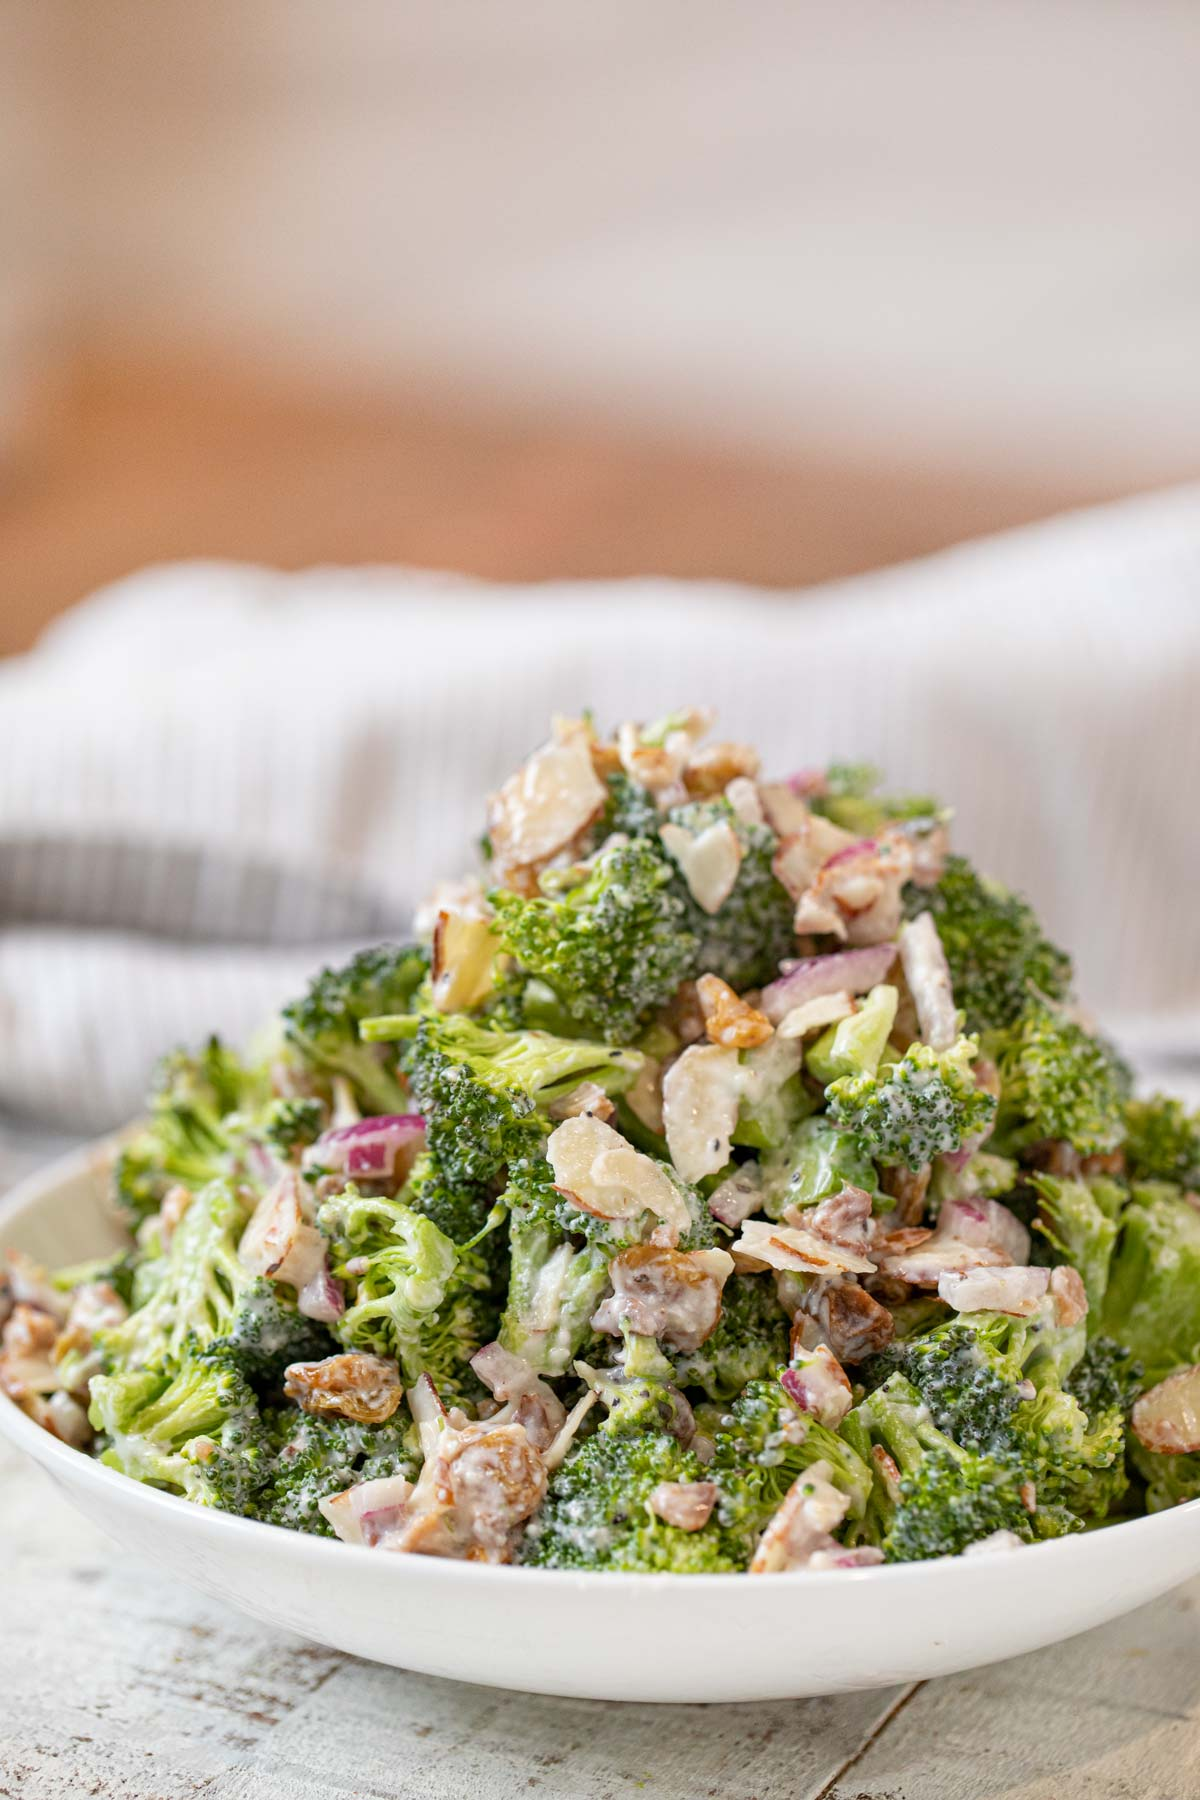 Healthy Greek Yogurt Broccoli Salad in white bowl